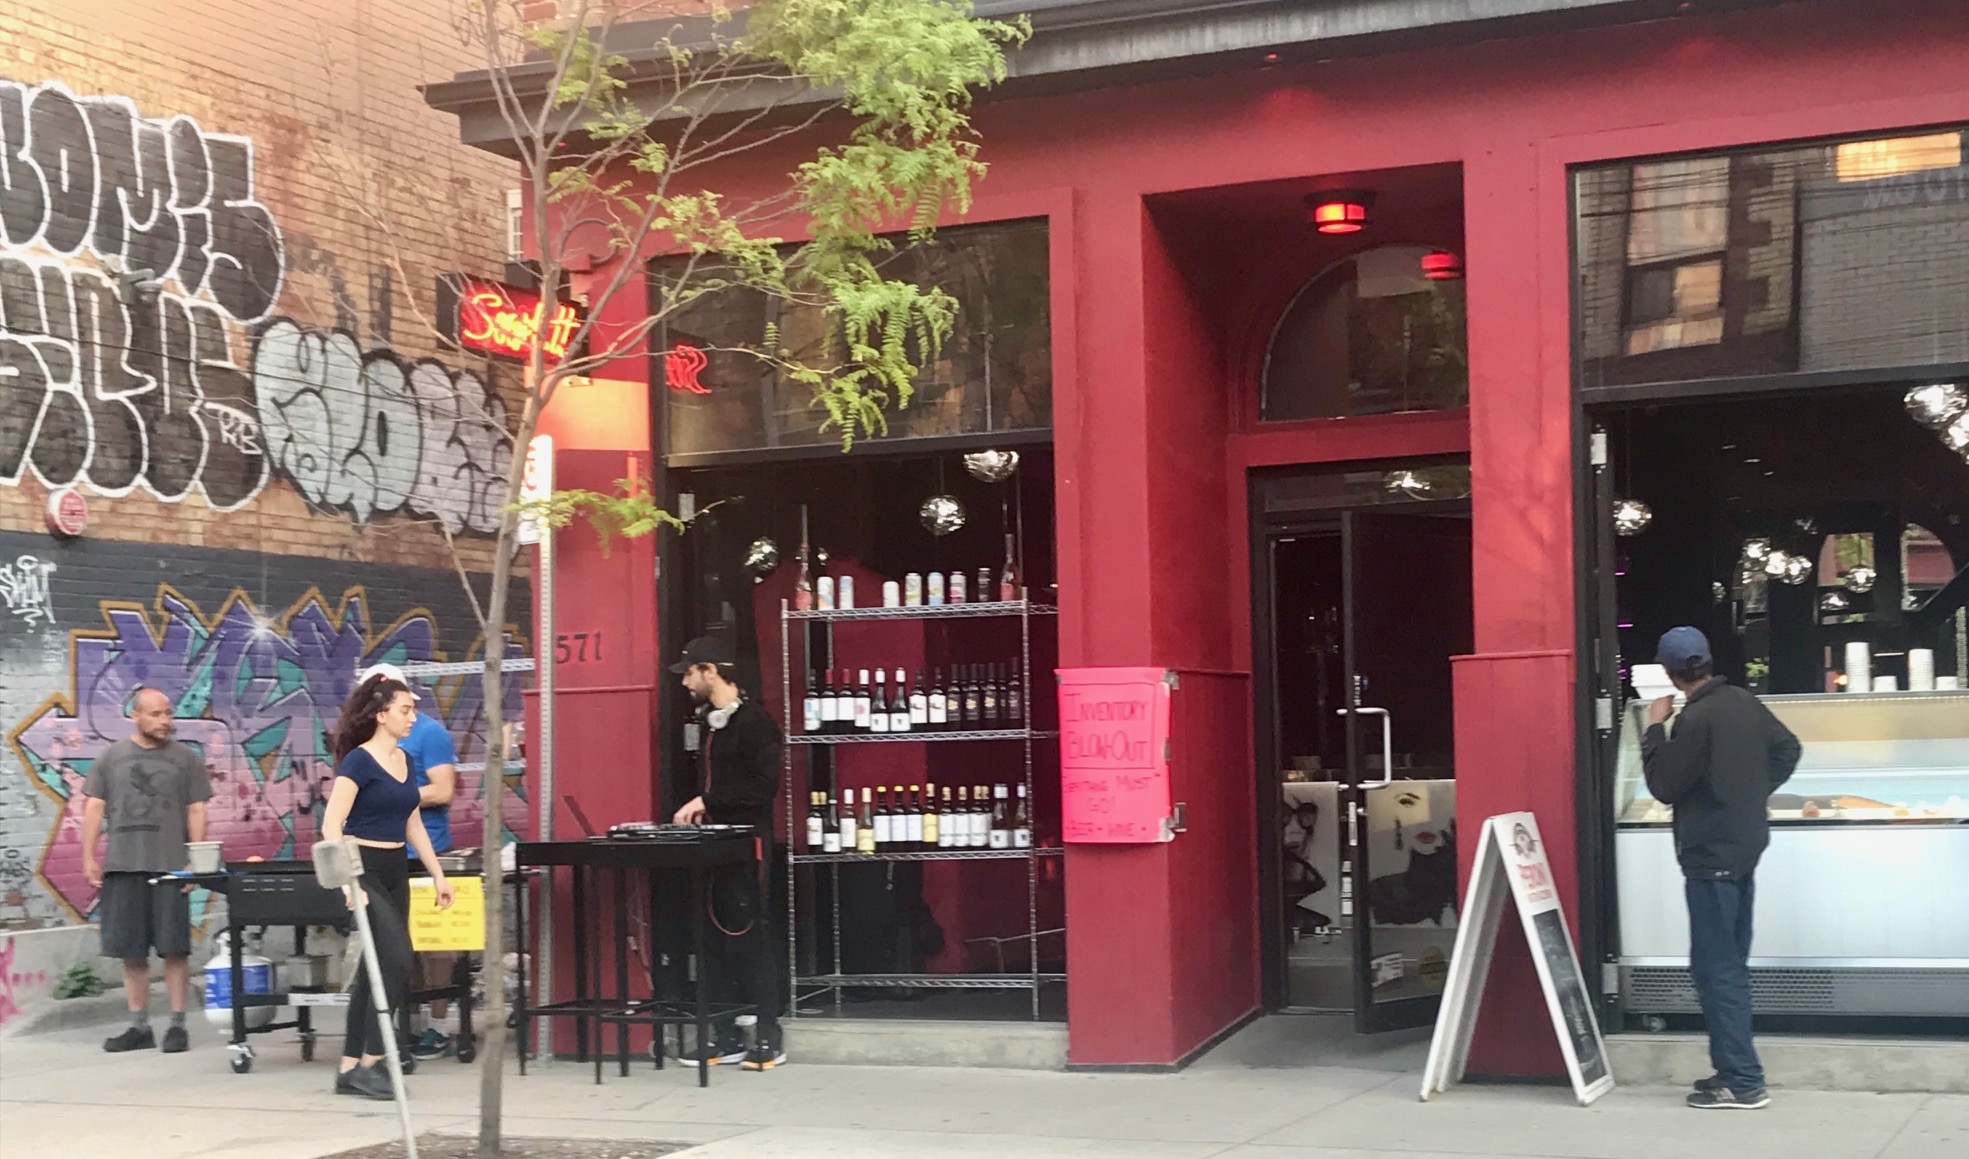 Toronto-restaurant-sells-drinks-outside-during-Covid.jpg